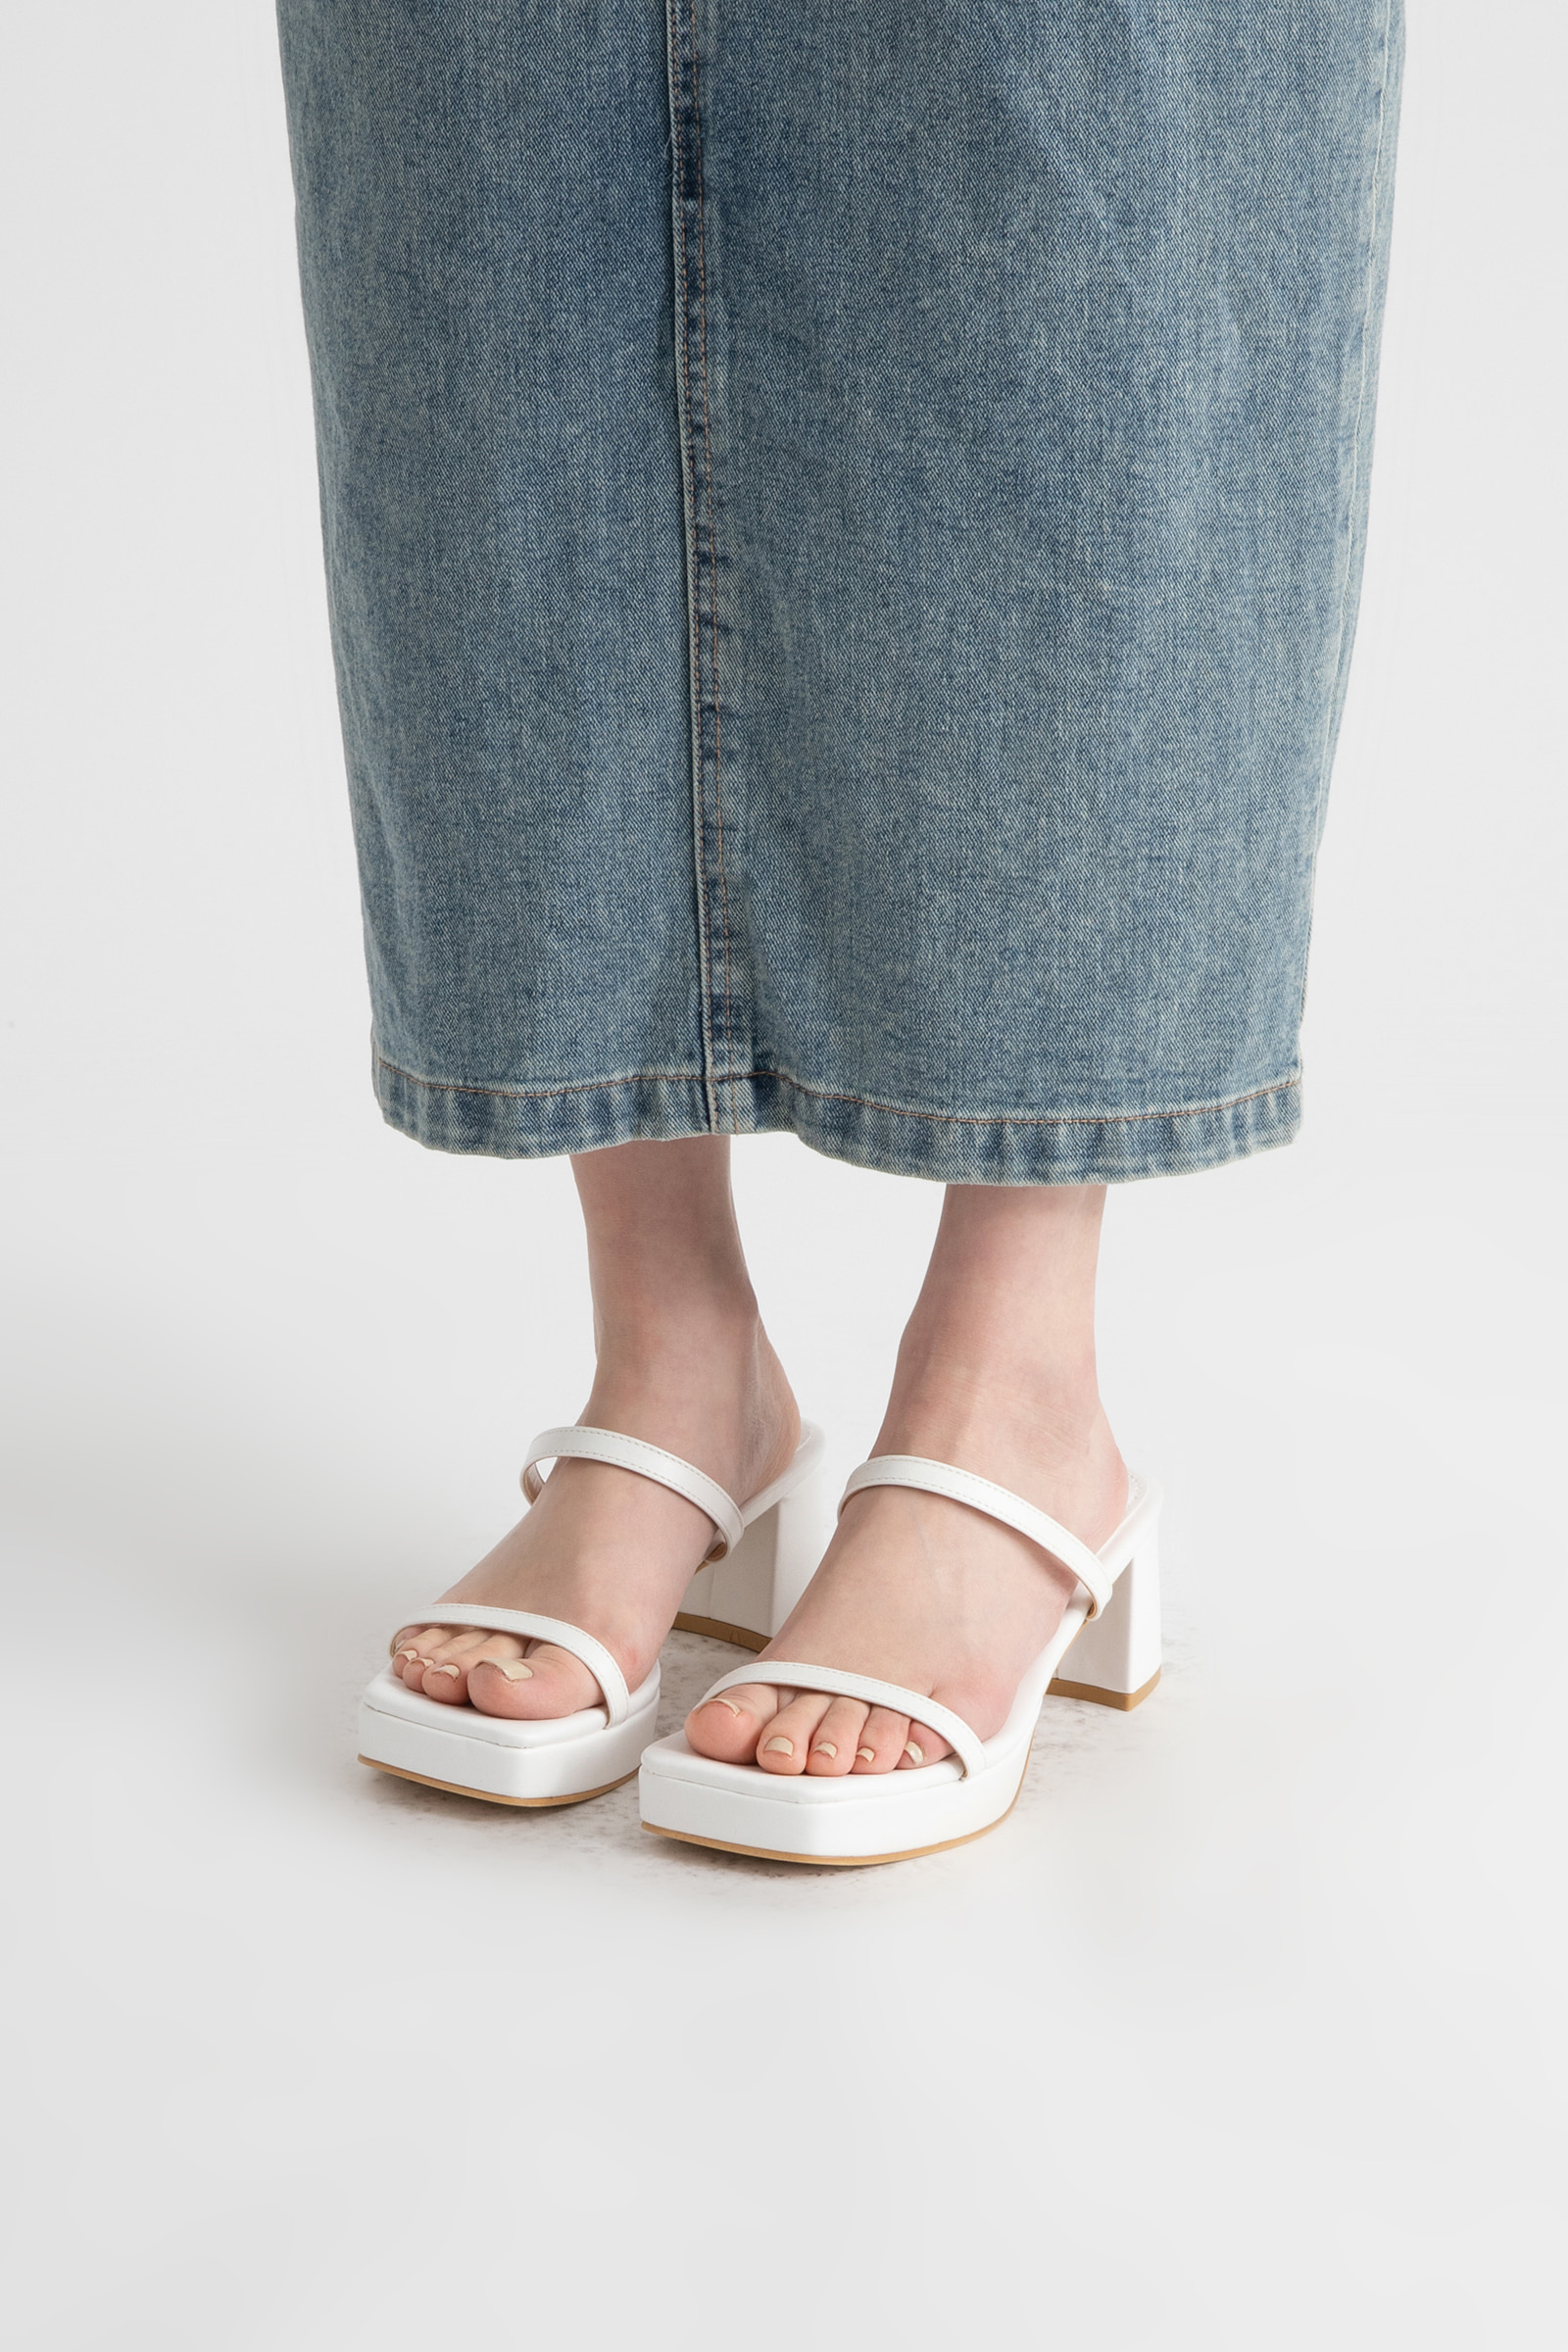 Balti middle heel sandals